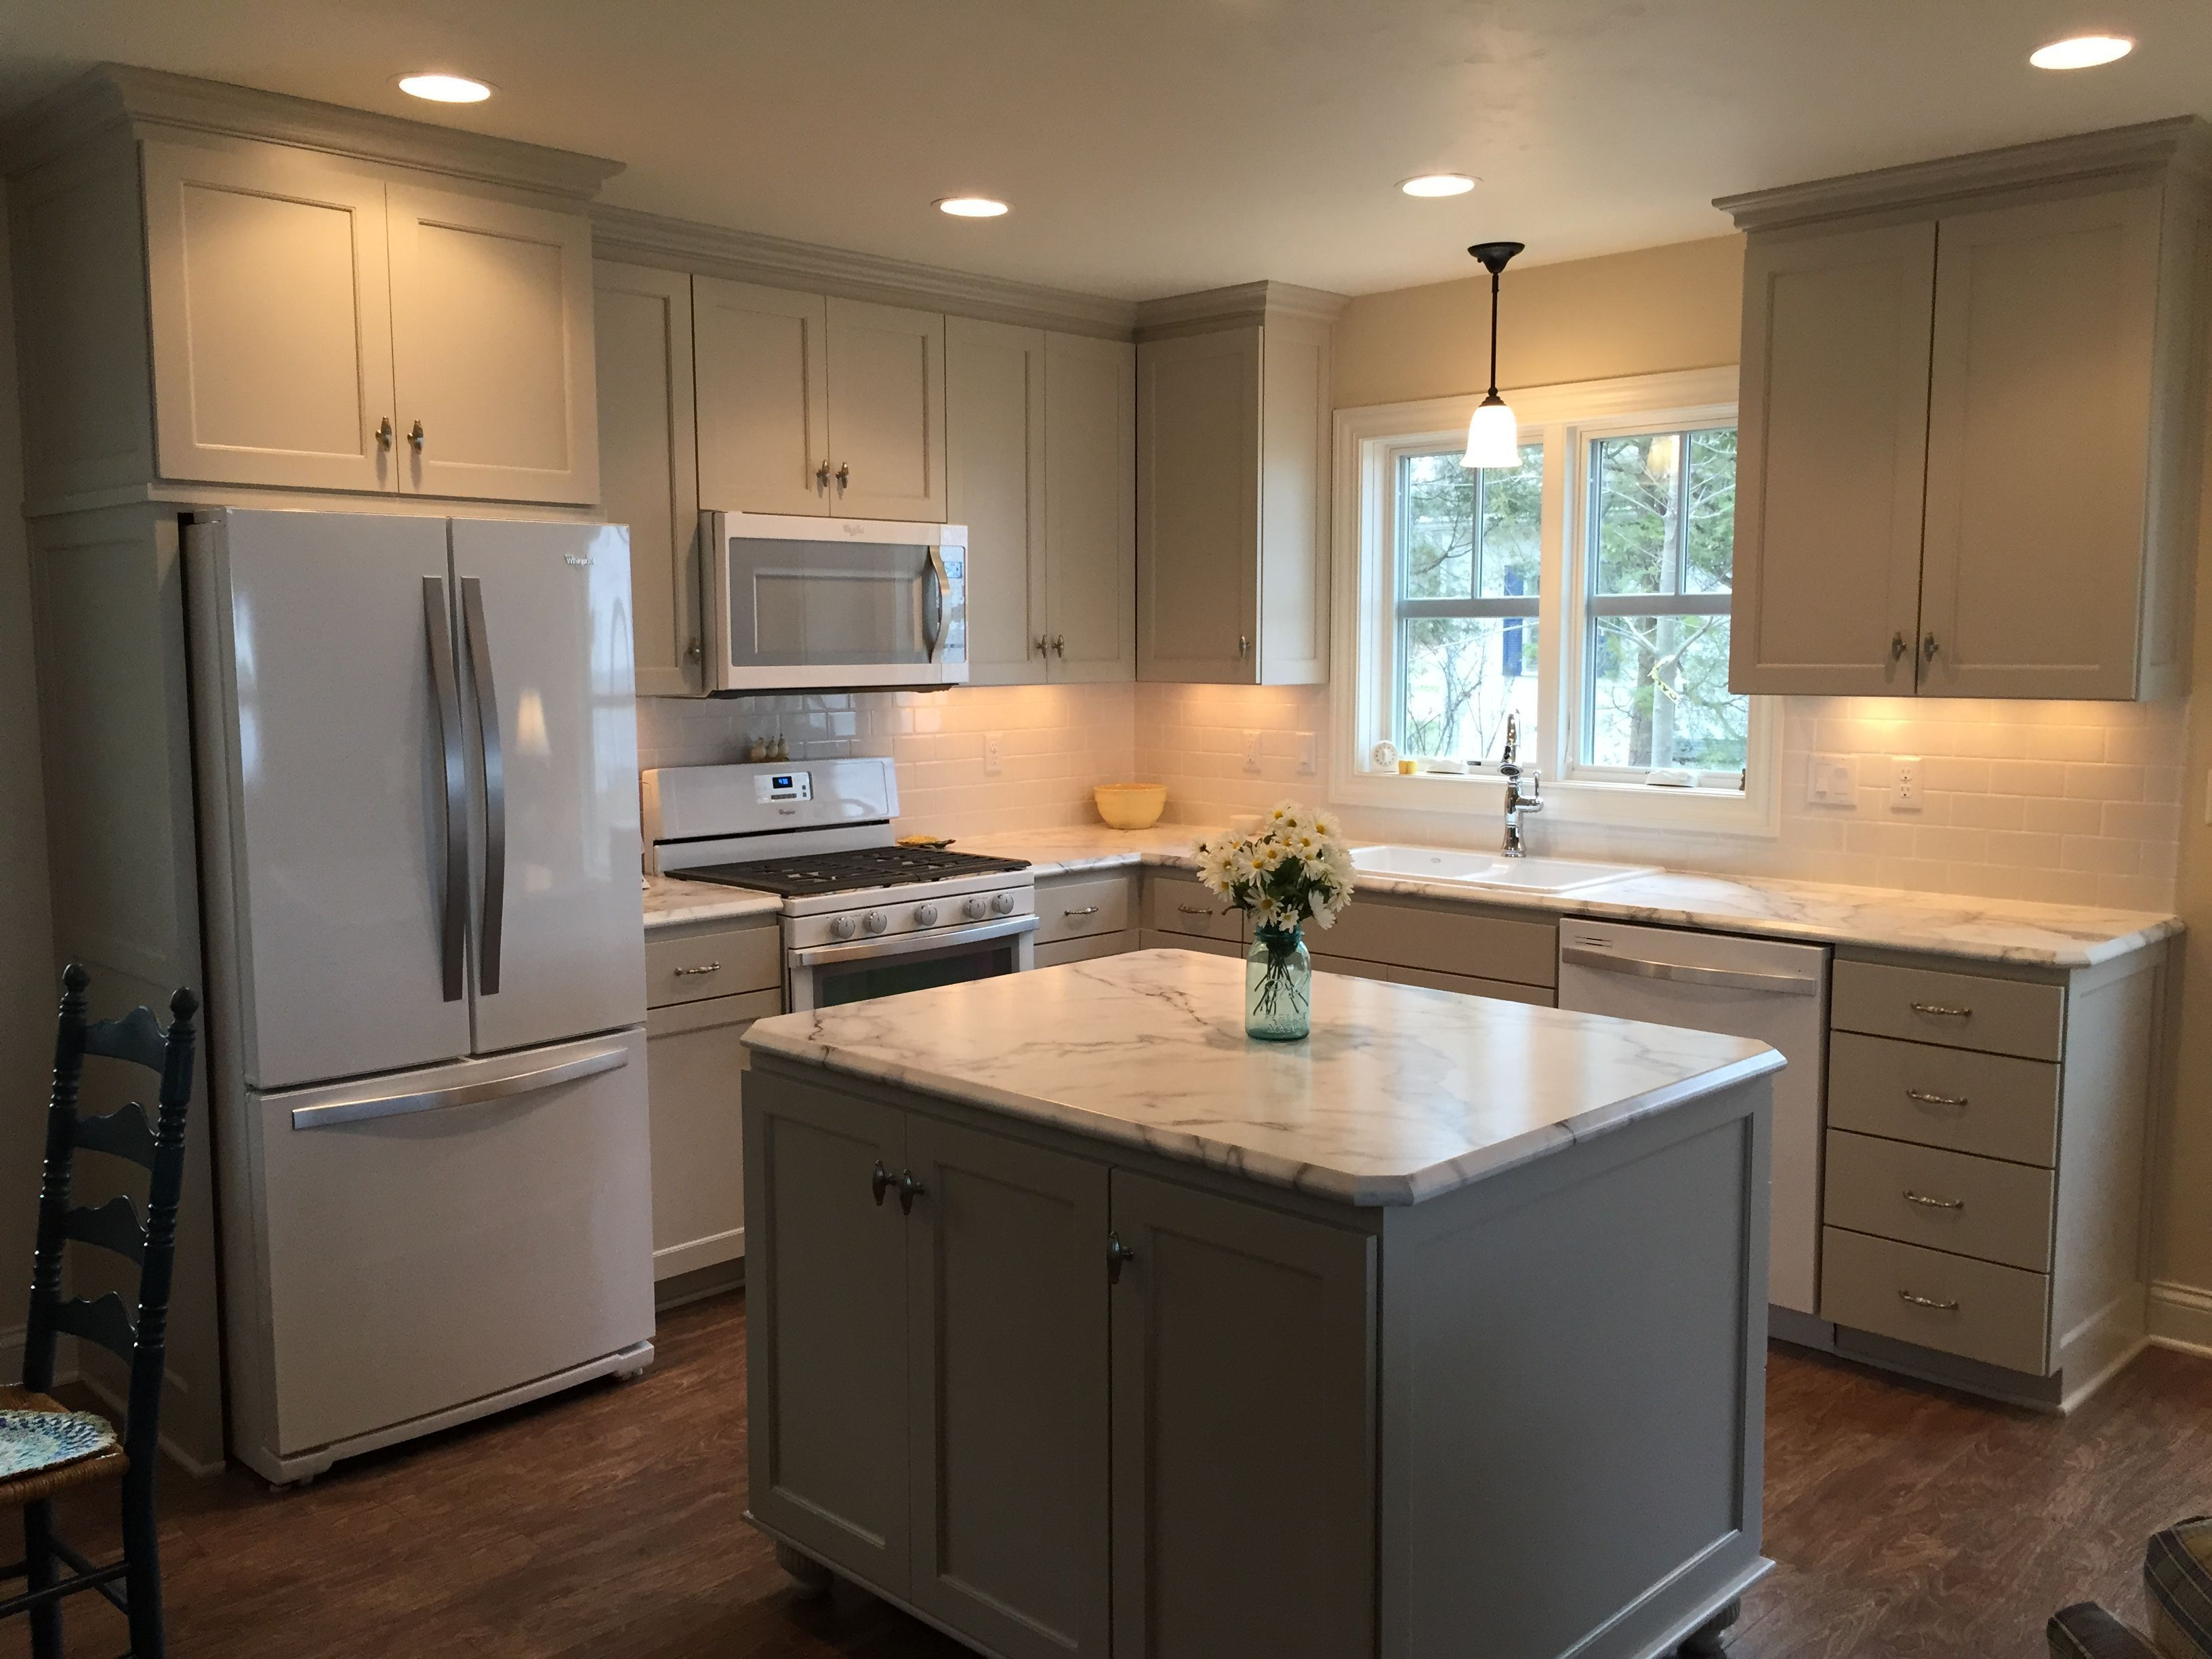 6 small kitchen remodel ideas that spruce your kitchen up in 2018